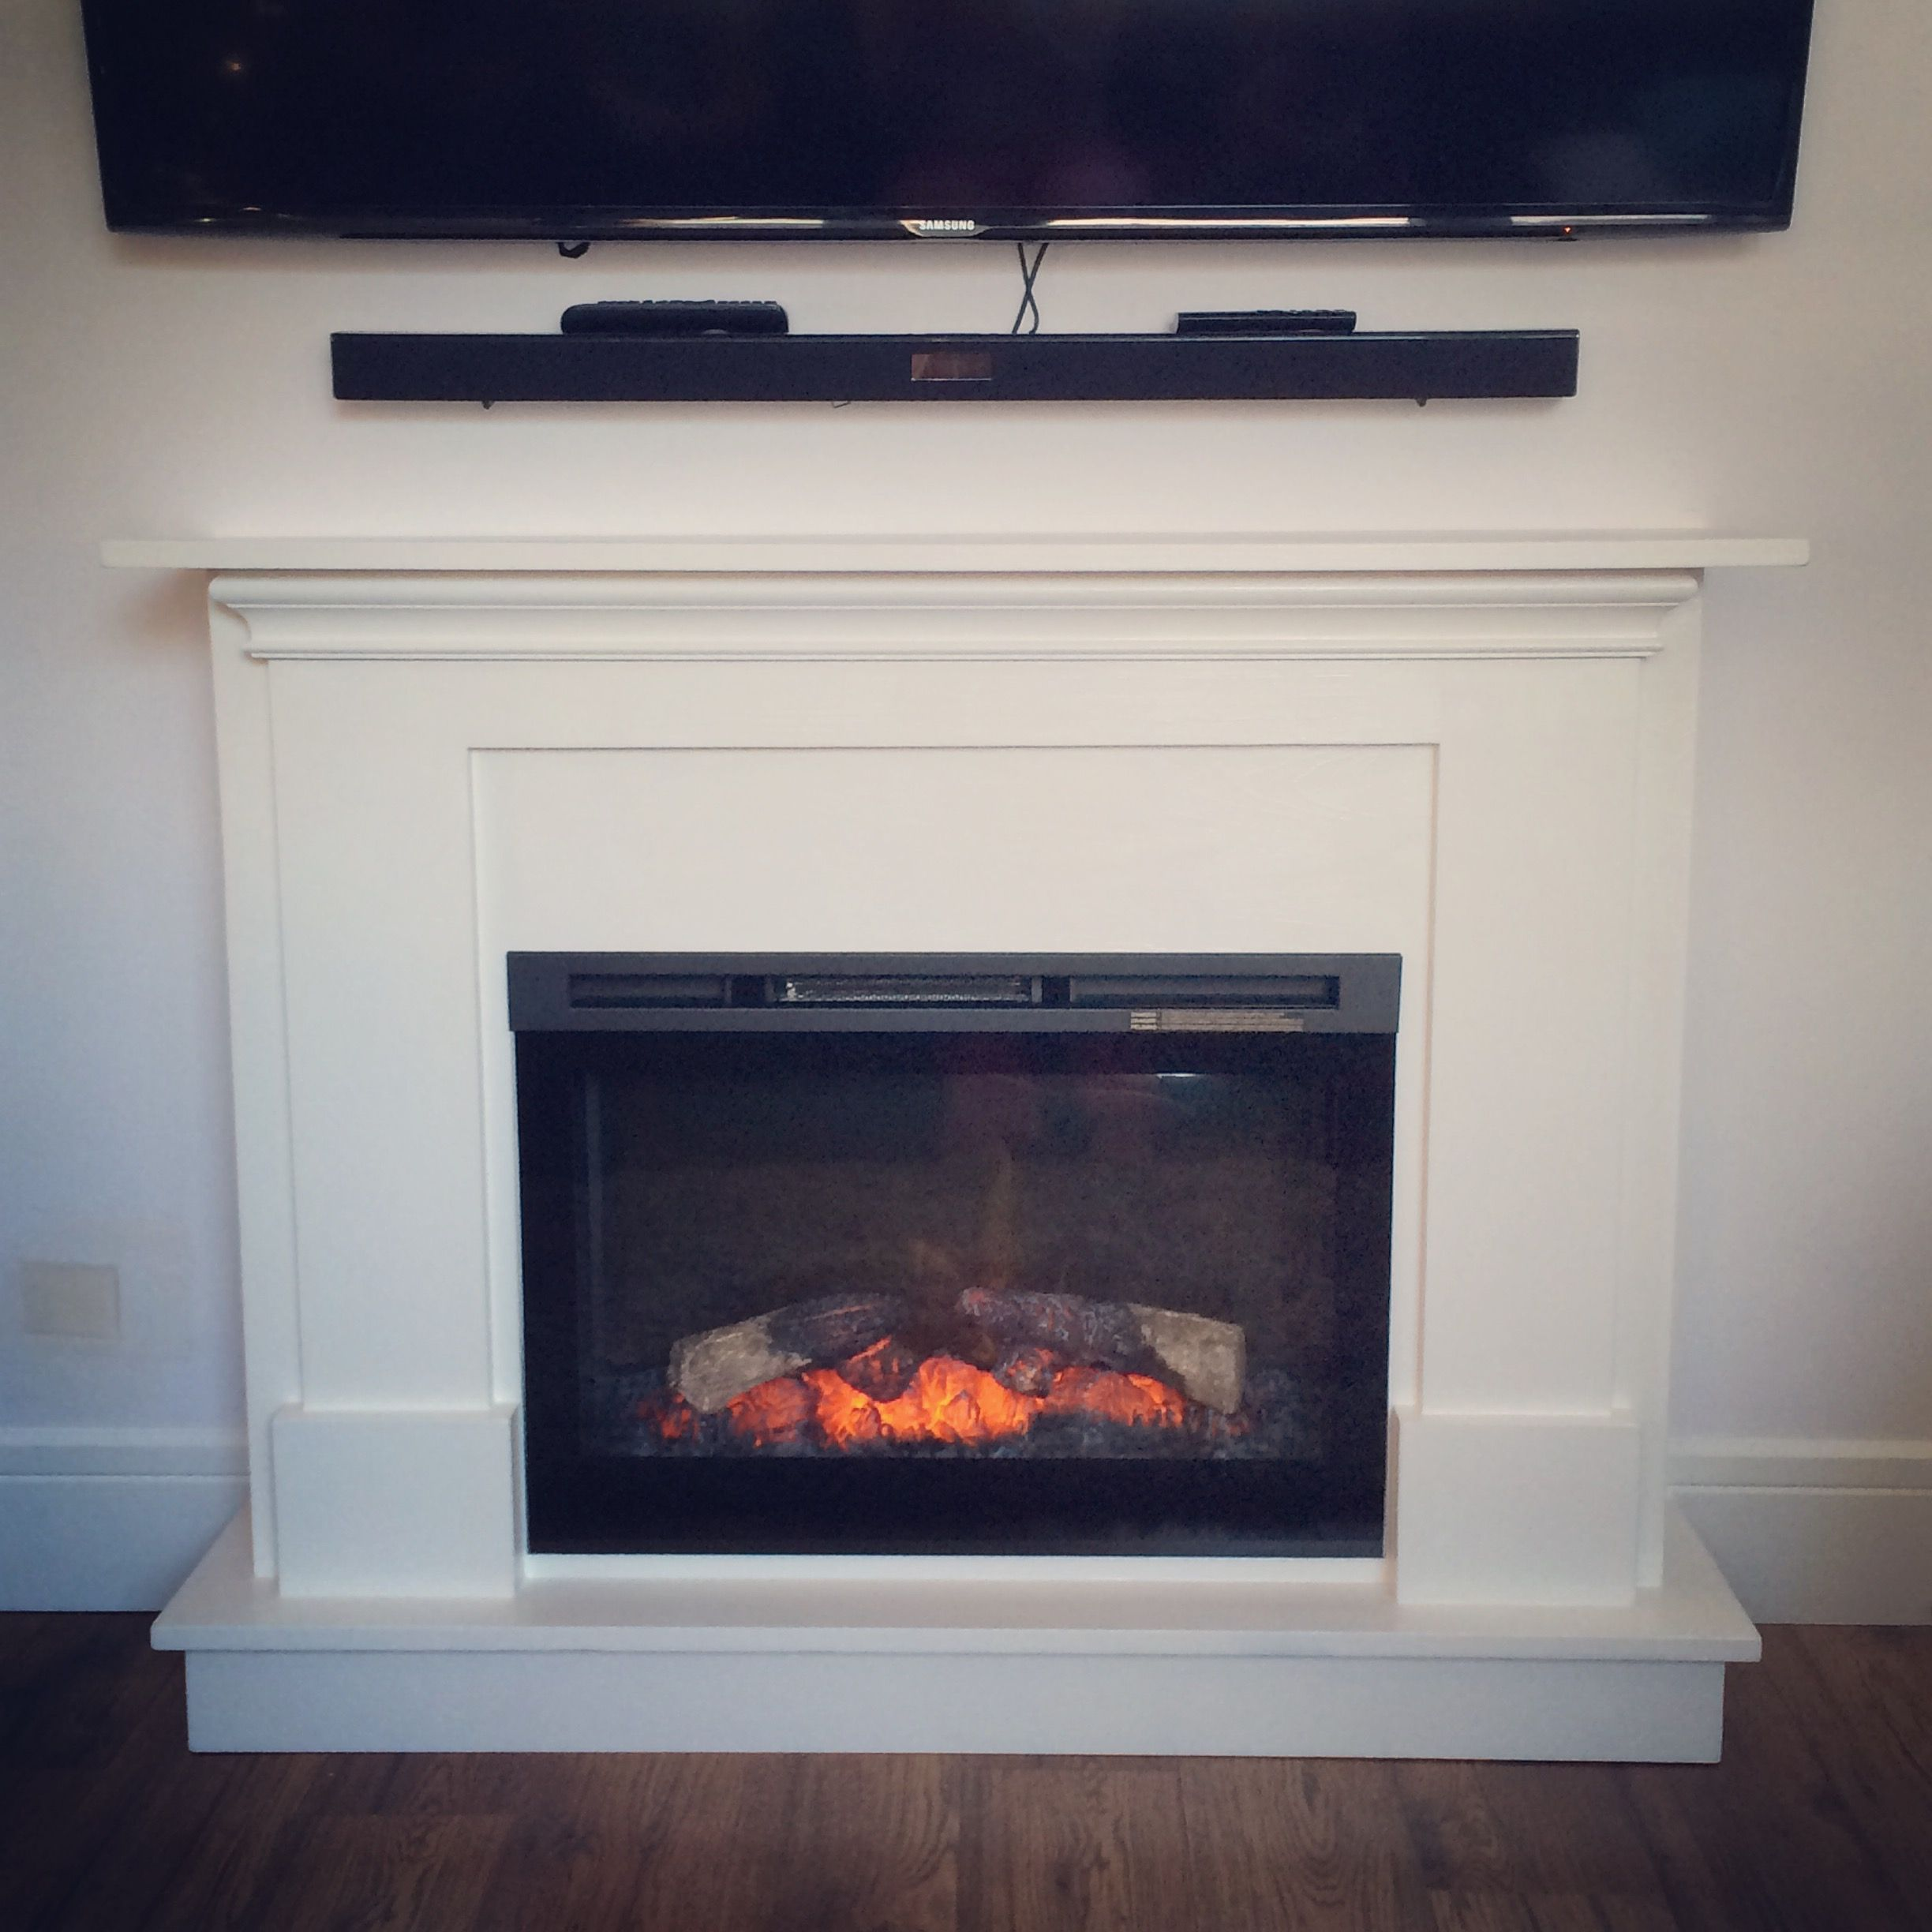 Electric Fireplace Surround And Mantel Electric Fireplace Fireplace Fireplace Surrounds